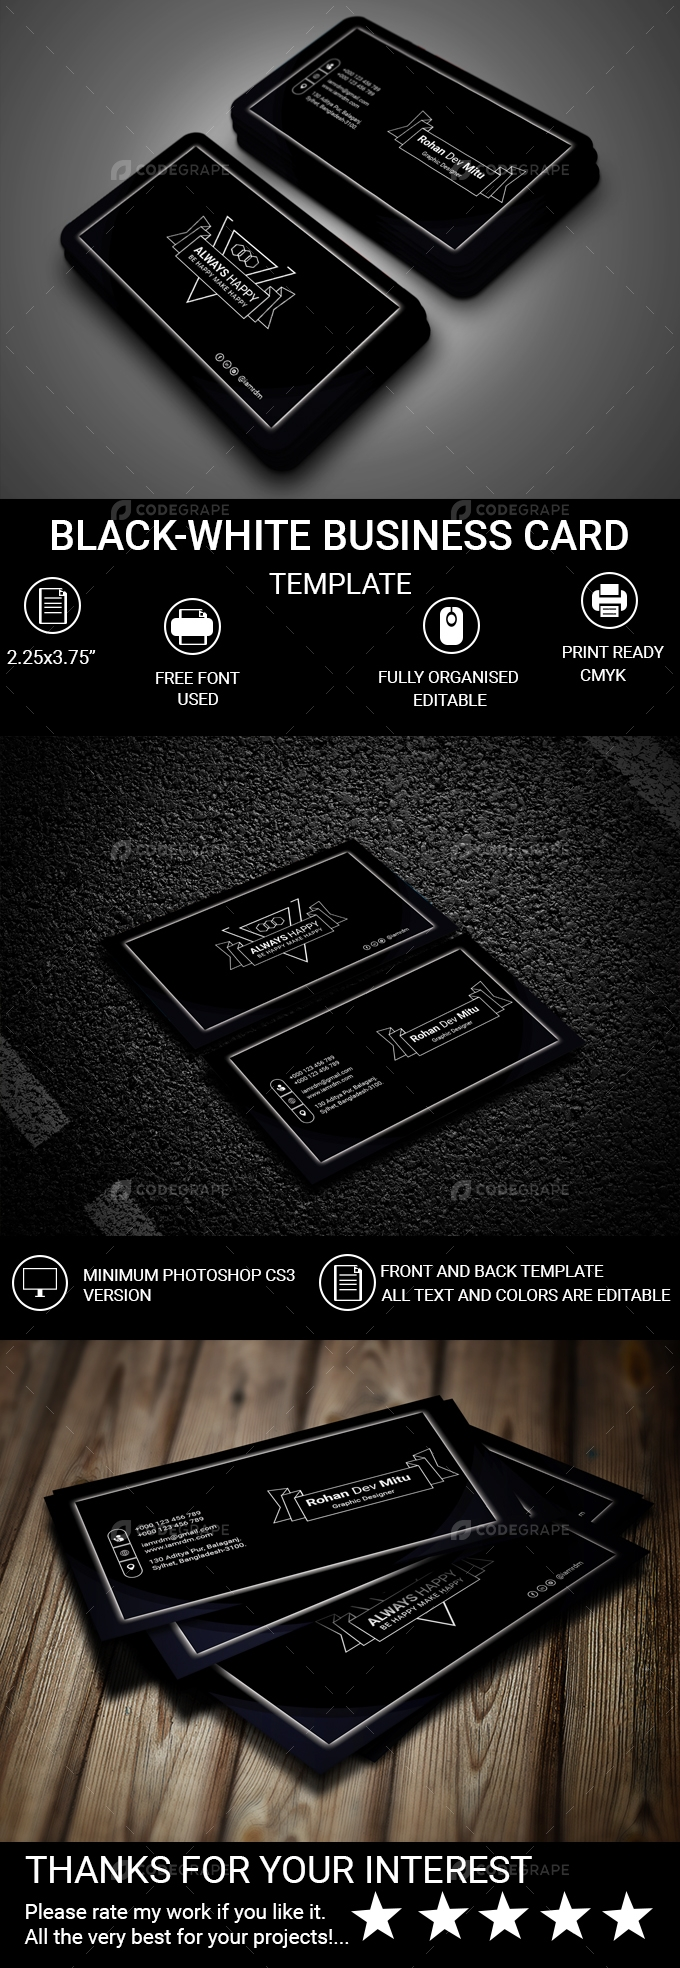 Black-White Business Card